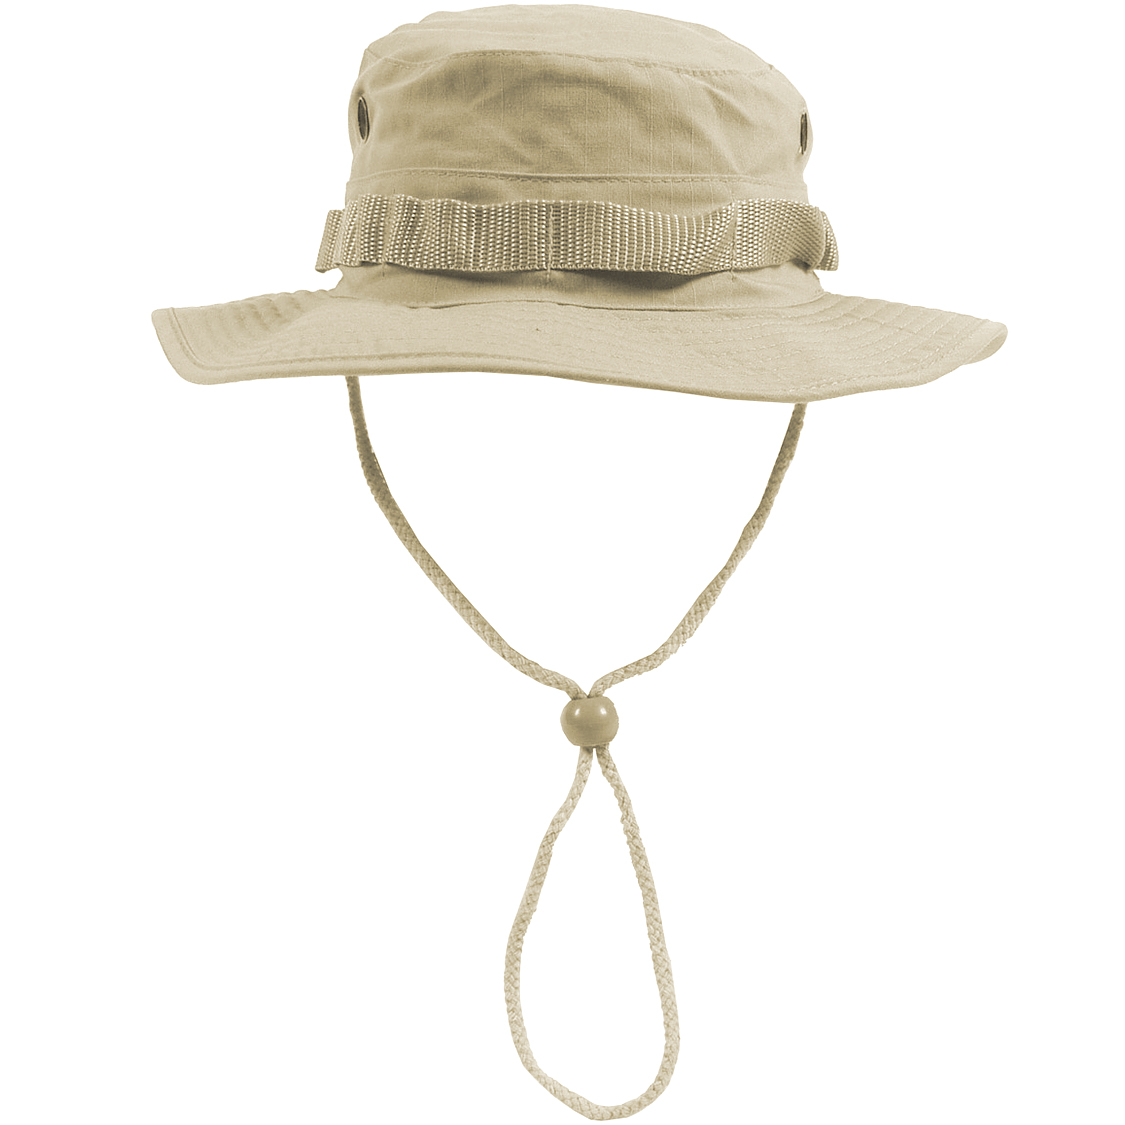 Sentinel ARMY COMBAT GI BOONIE HAT HIKING FISHING BUSH CAP 100% COTTON  RIPSTOP KHAKI S- 44188e709d3